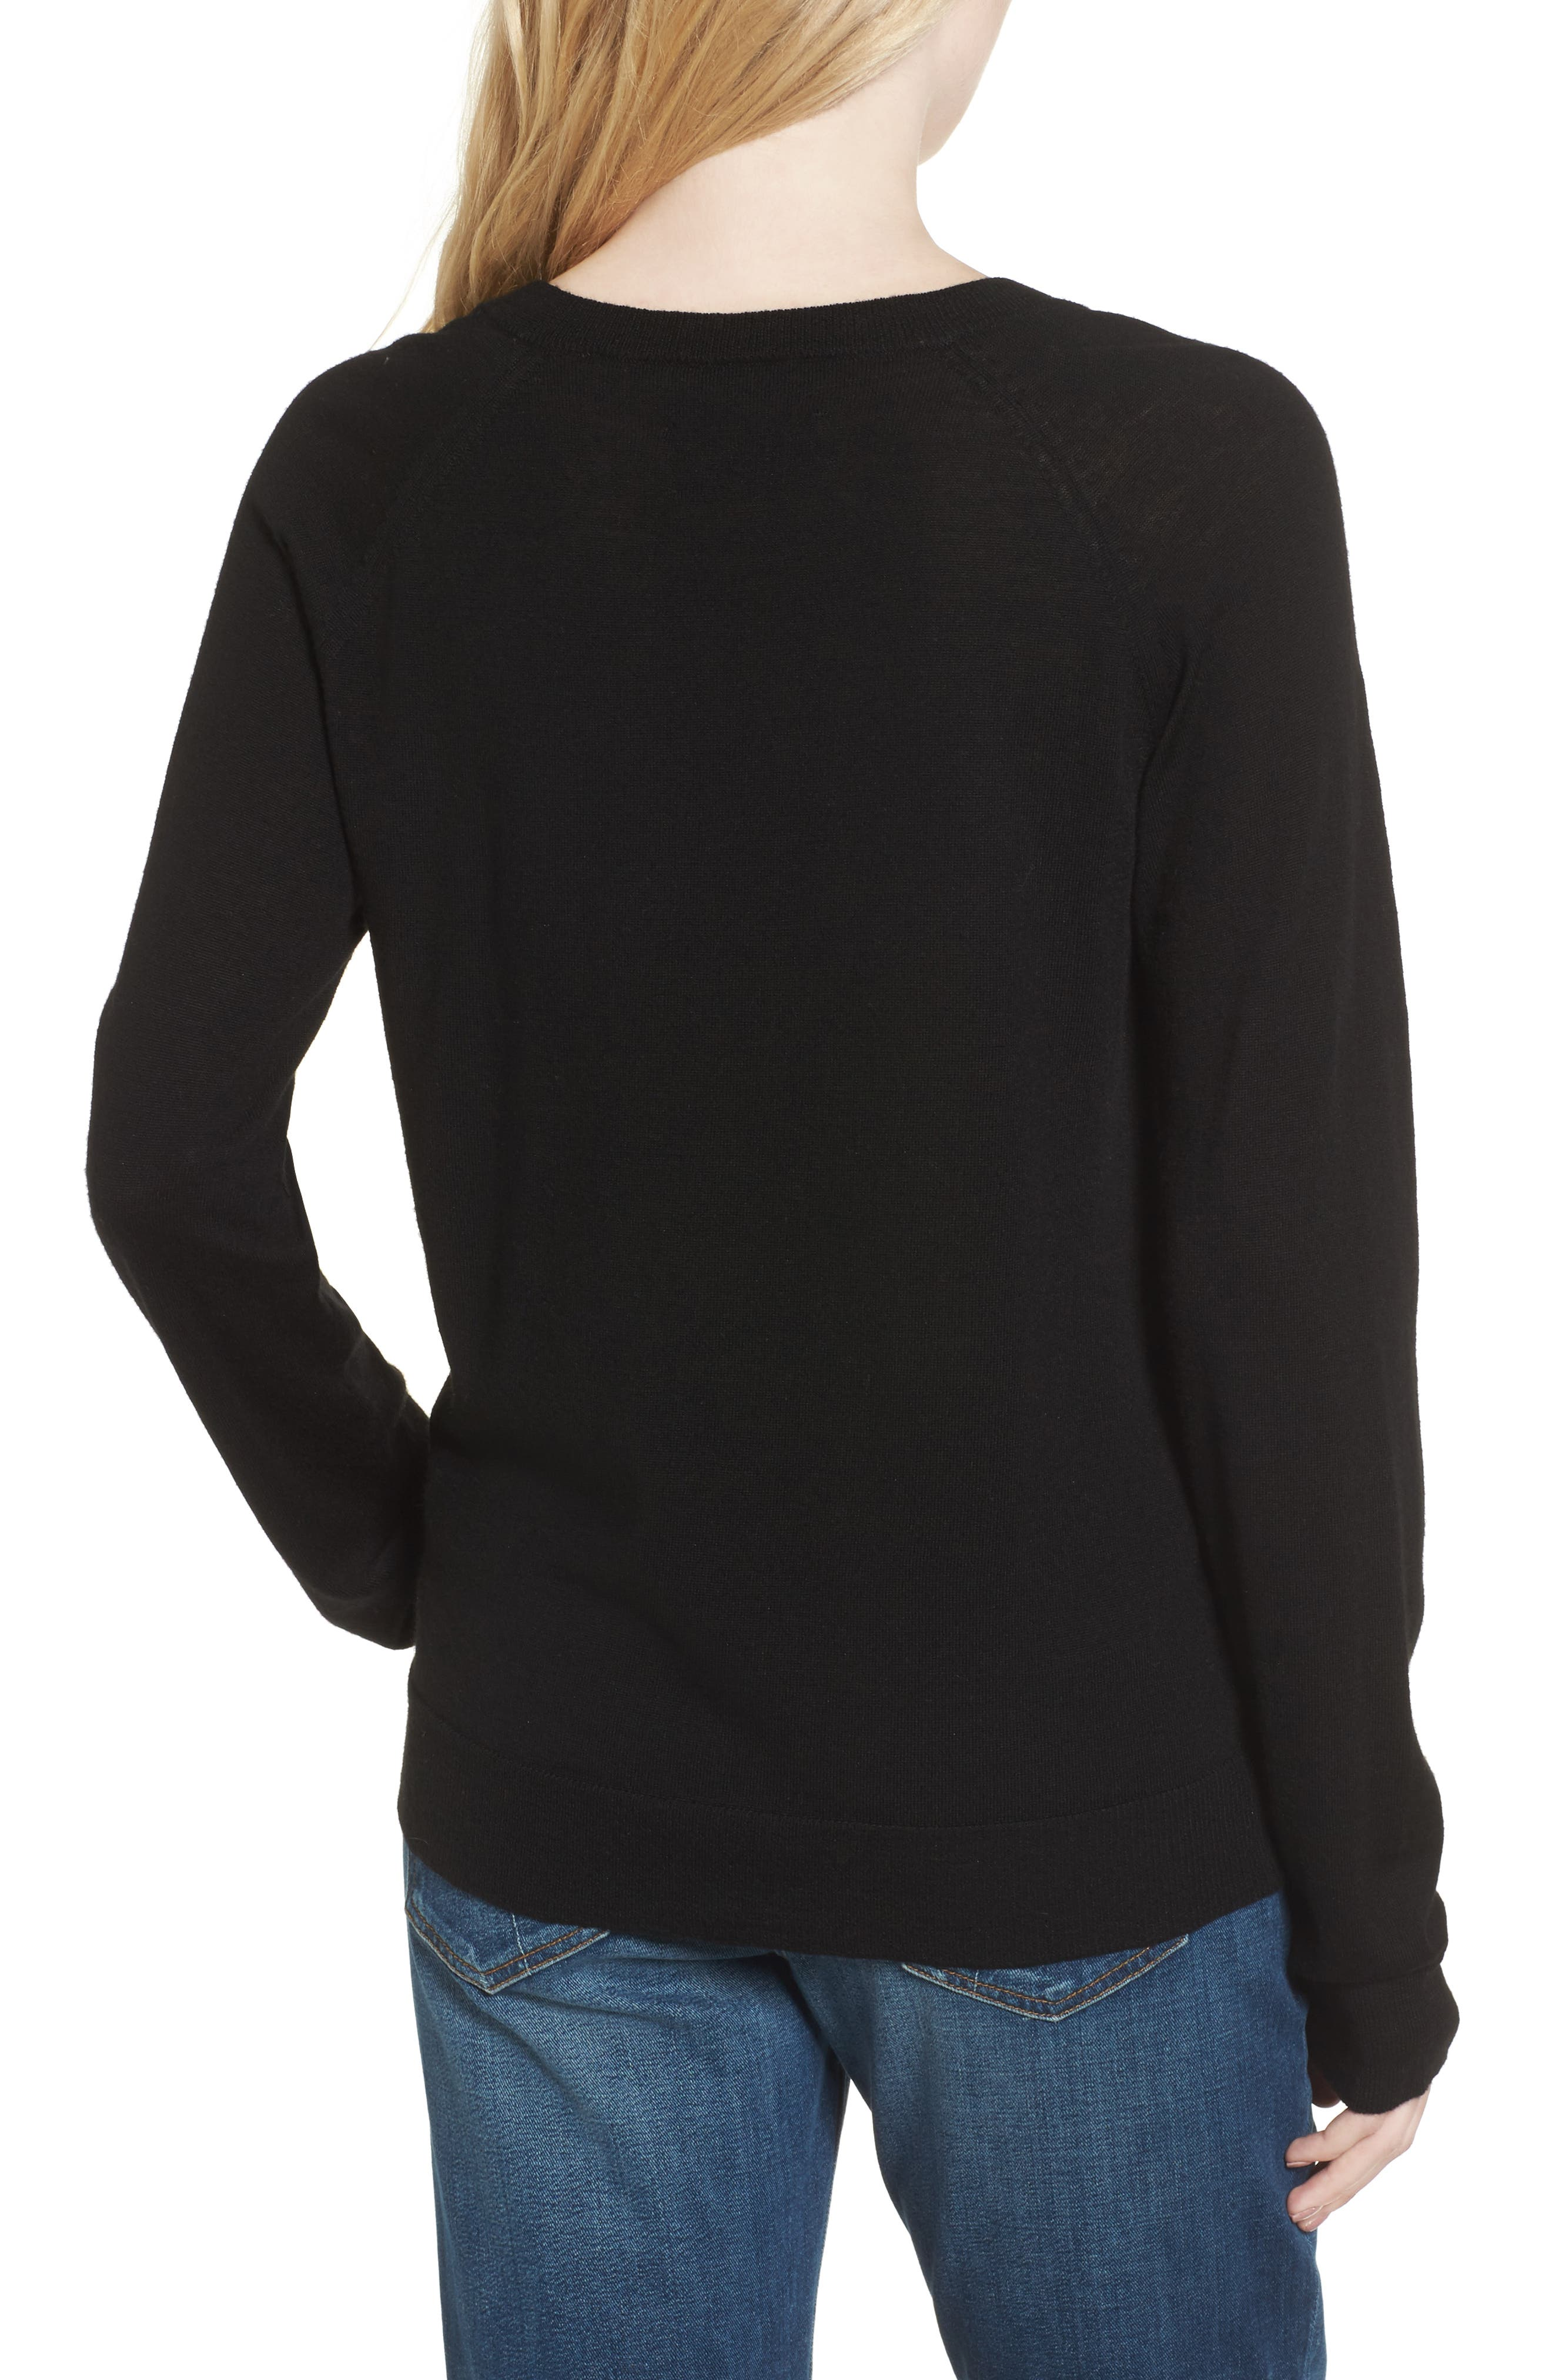 Reglis Merino Wool Sweater,                             Alternate thumbnail 2, color,                             001